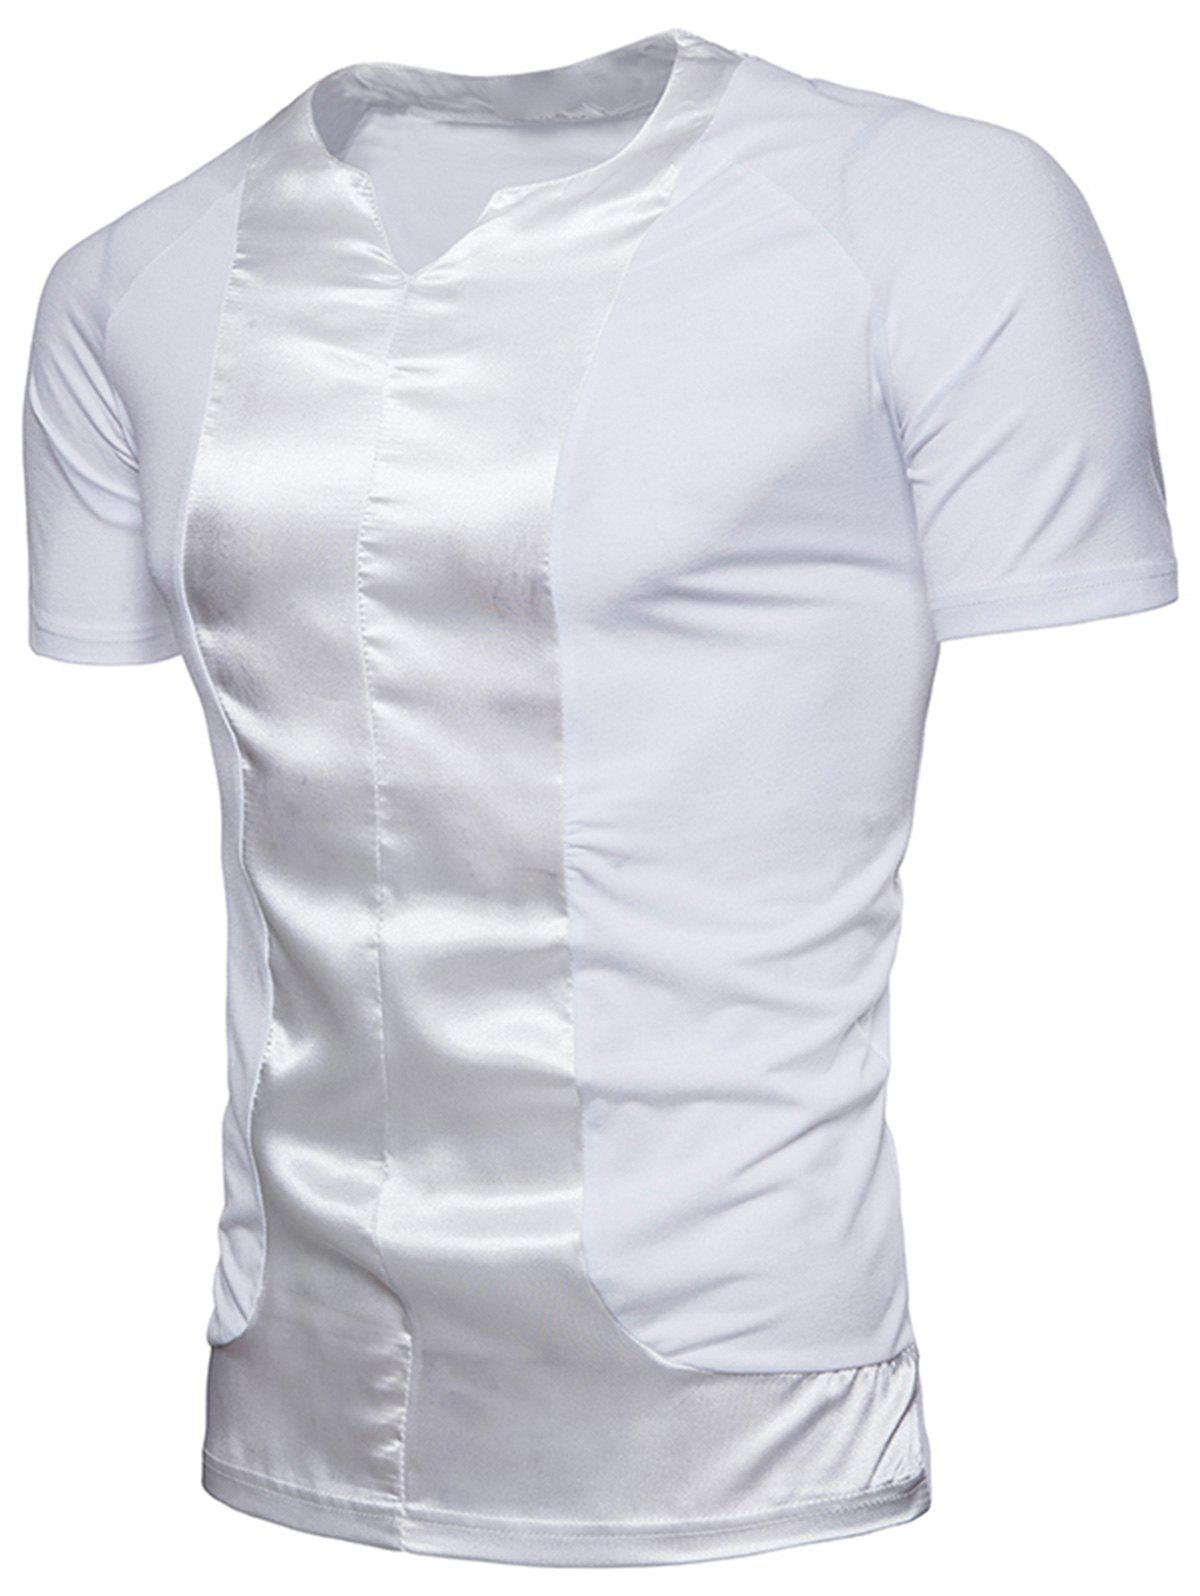 Crew Neck Satin Panel T-shirt - WHITE 3XL